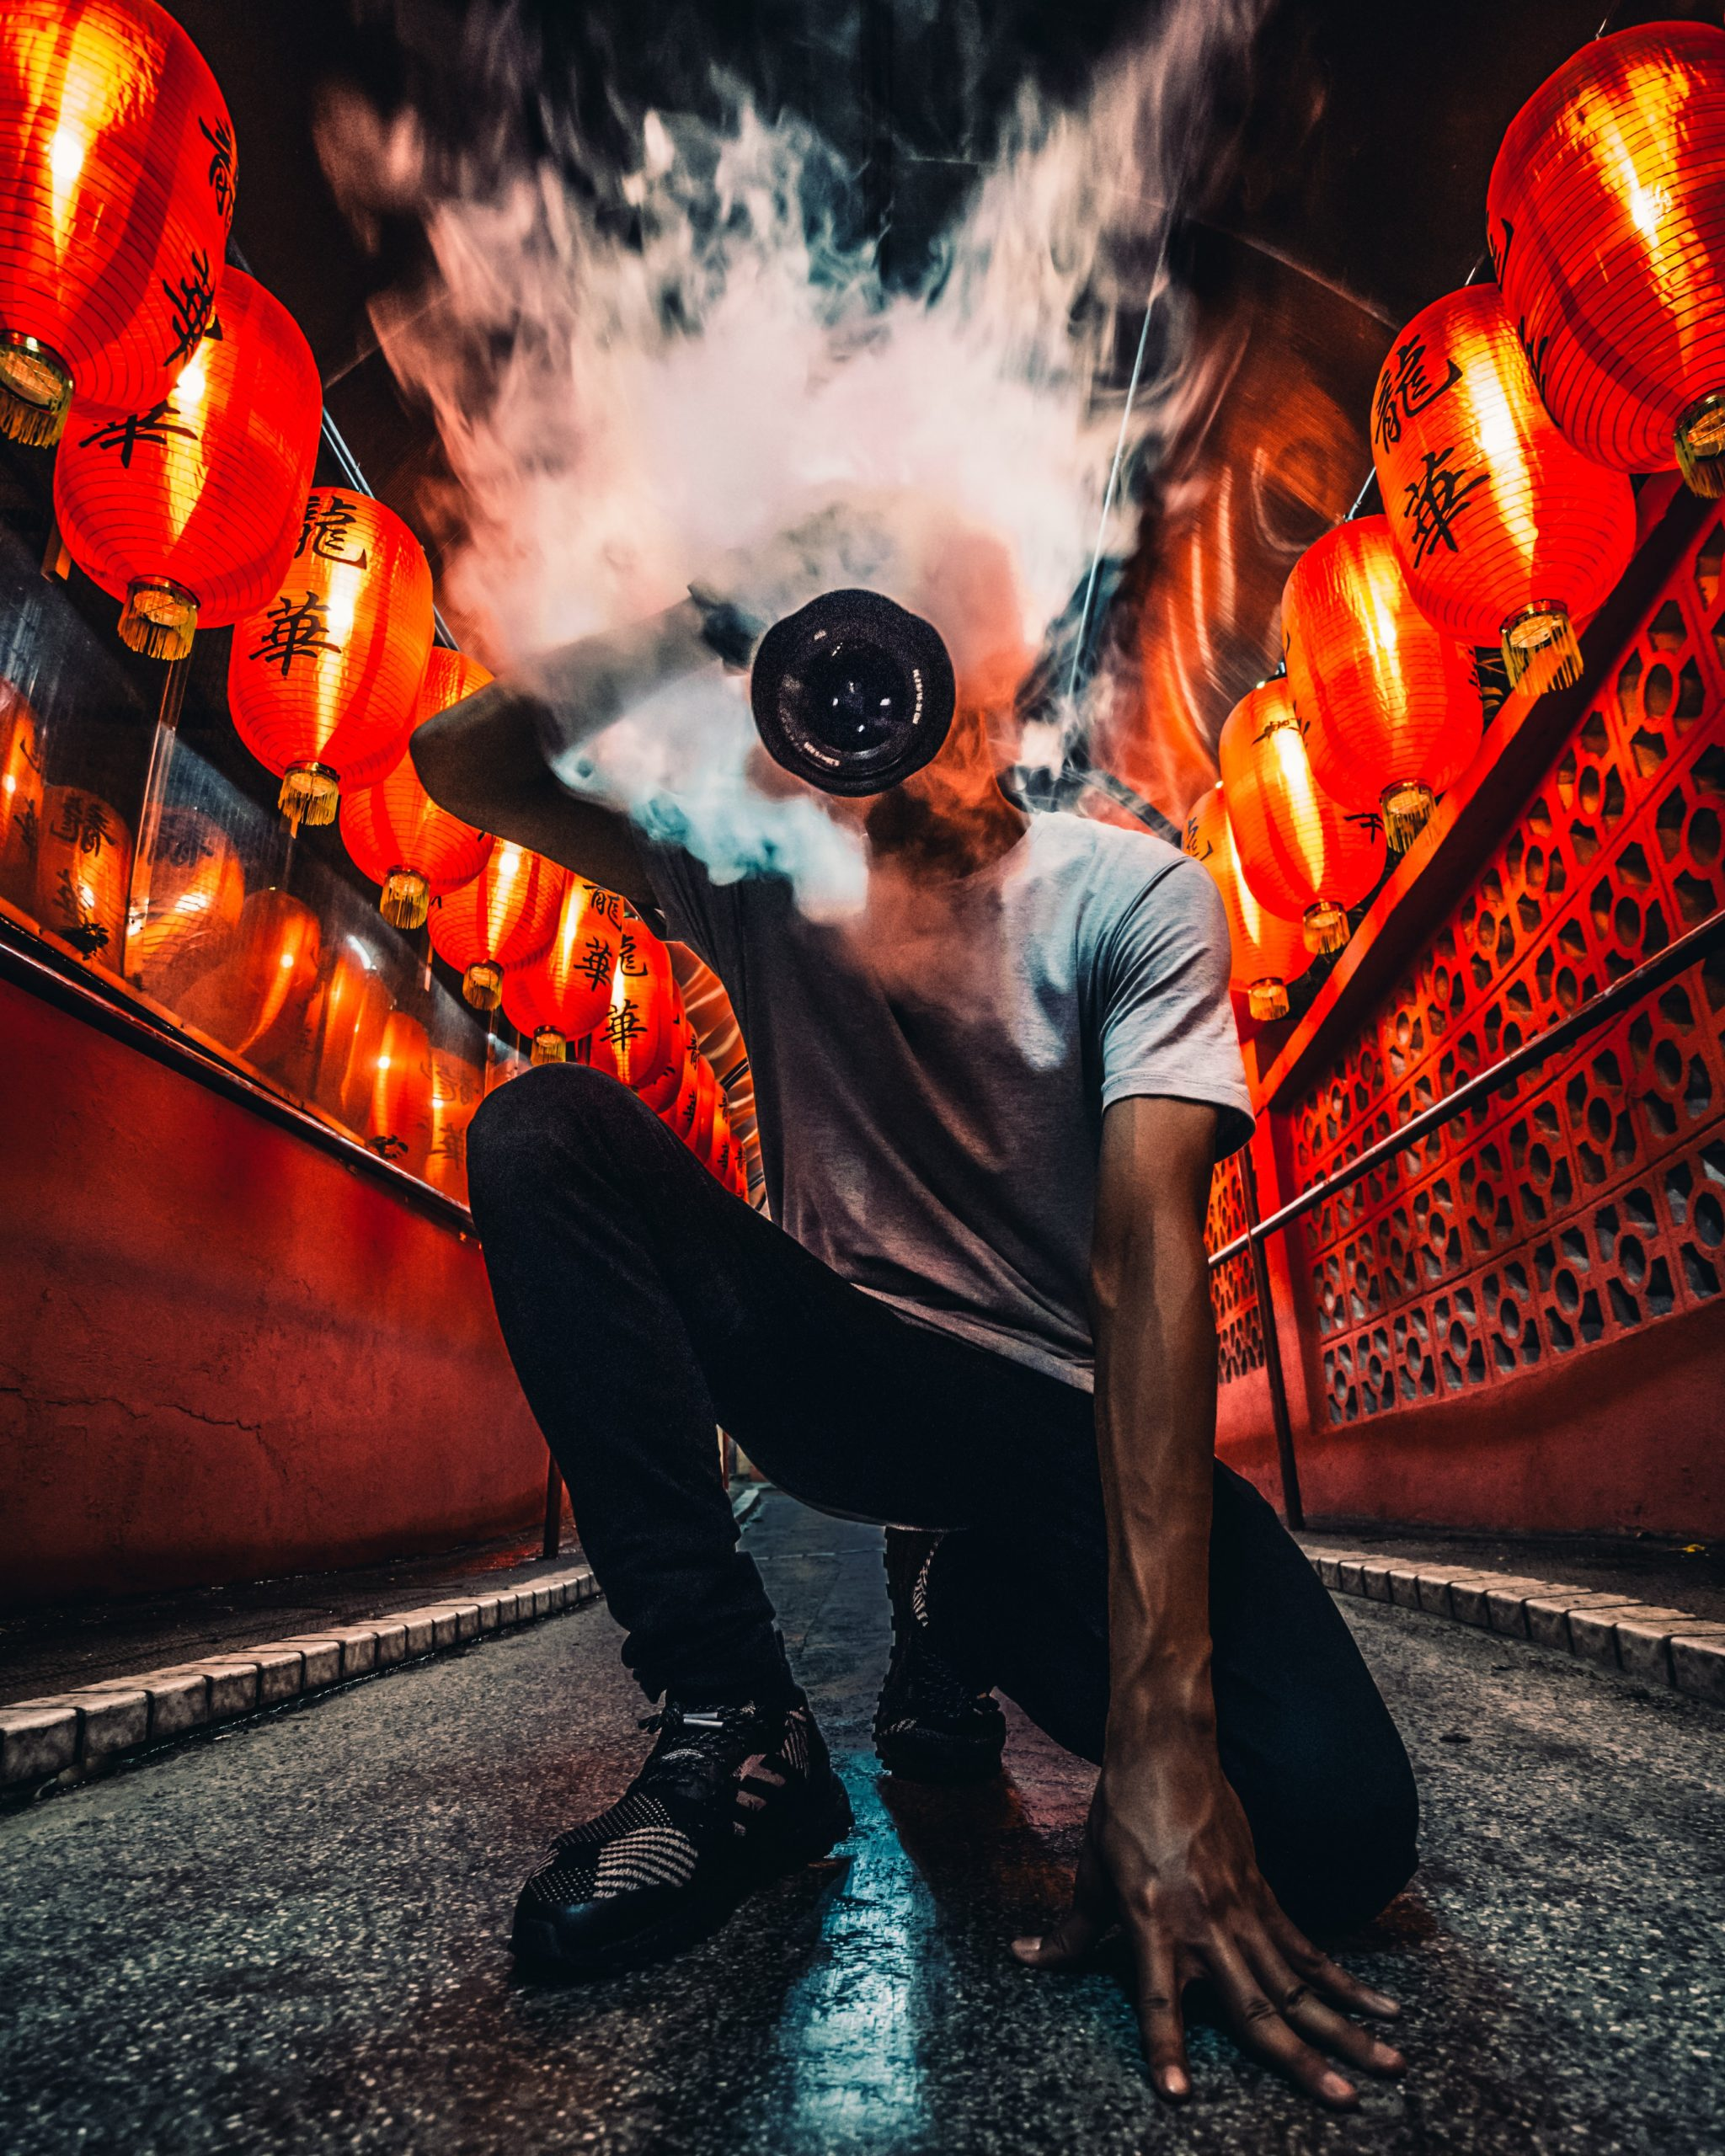 vaping is the new alternative to smoking